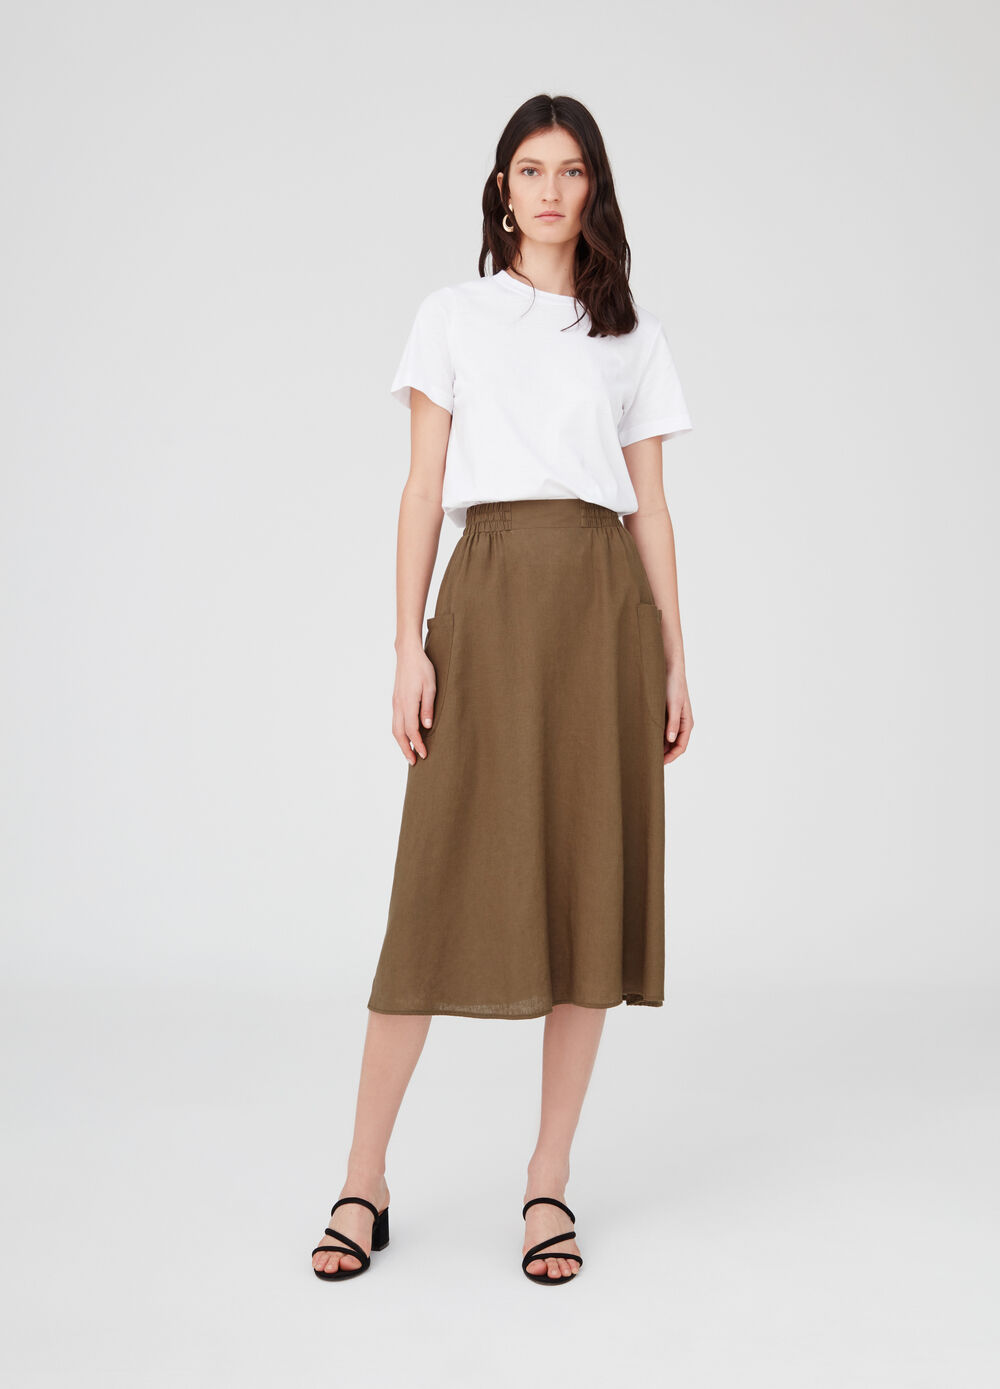 Long skirt with large side pockets